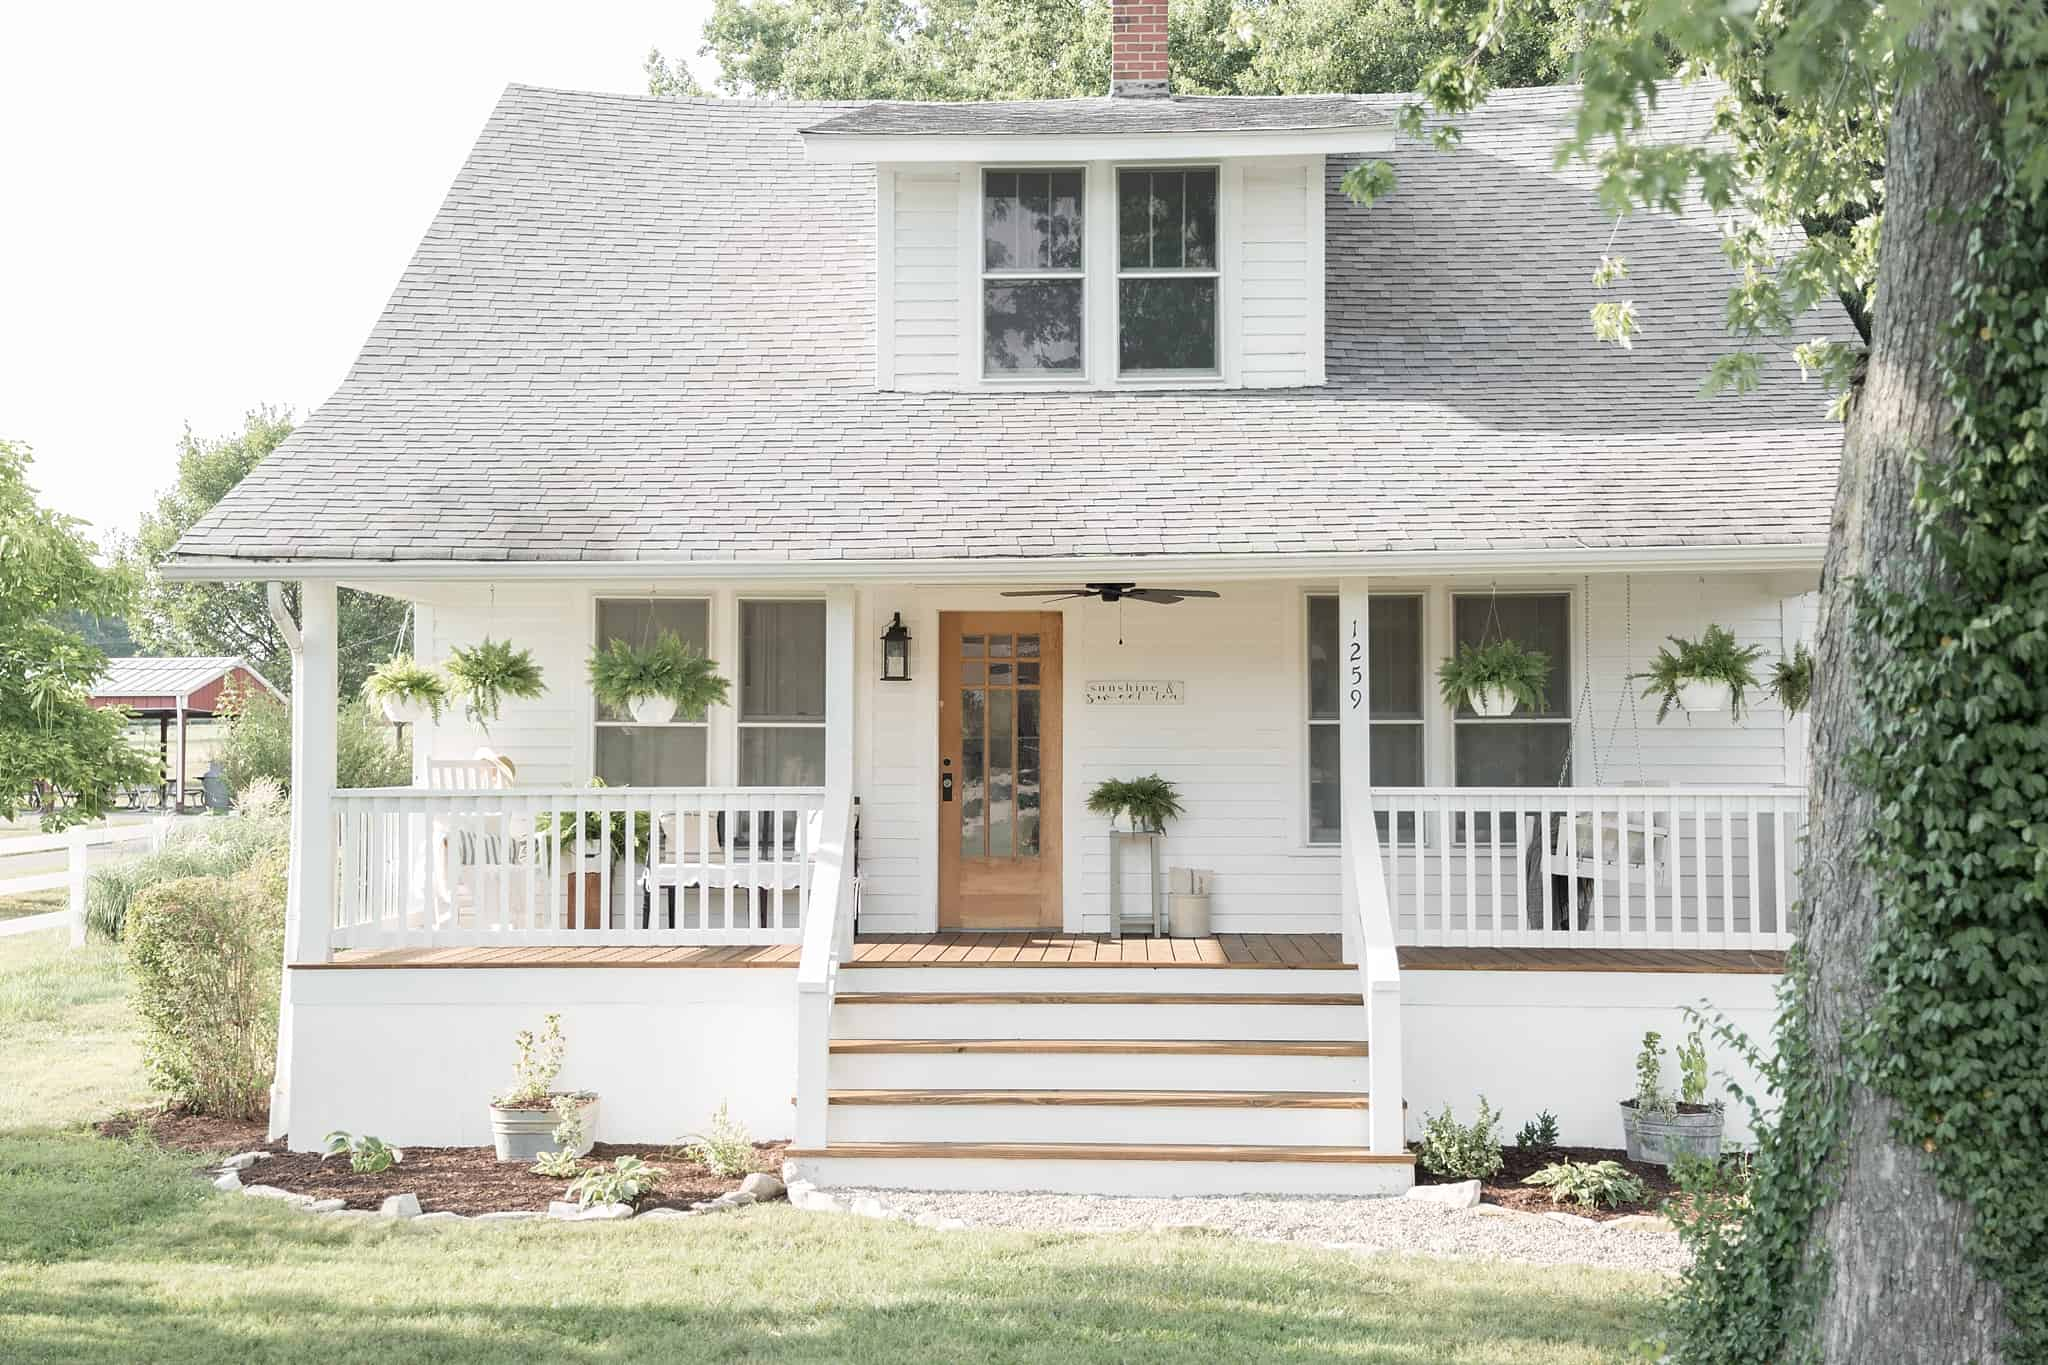 Farmhouse Front Porch Railing Ideas How To Cover Concrete Steps With Wood Farmhouse On Boone